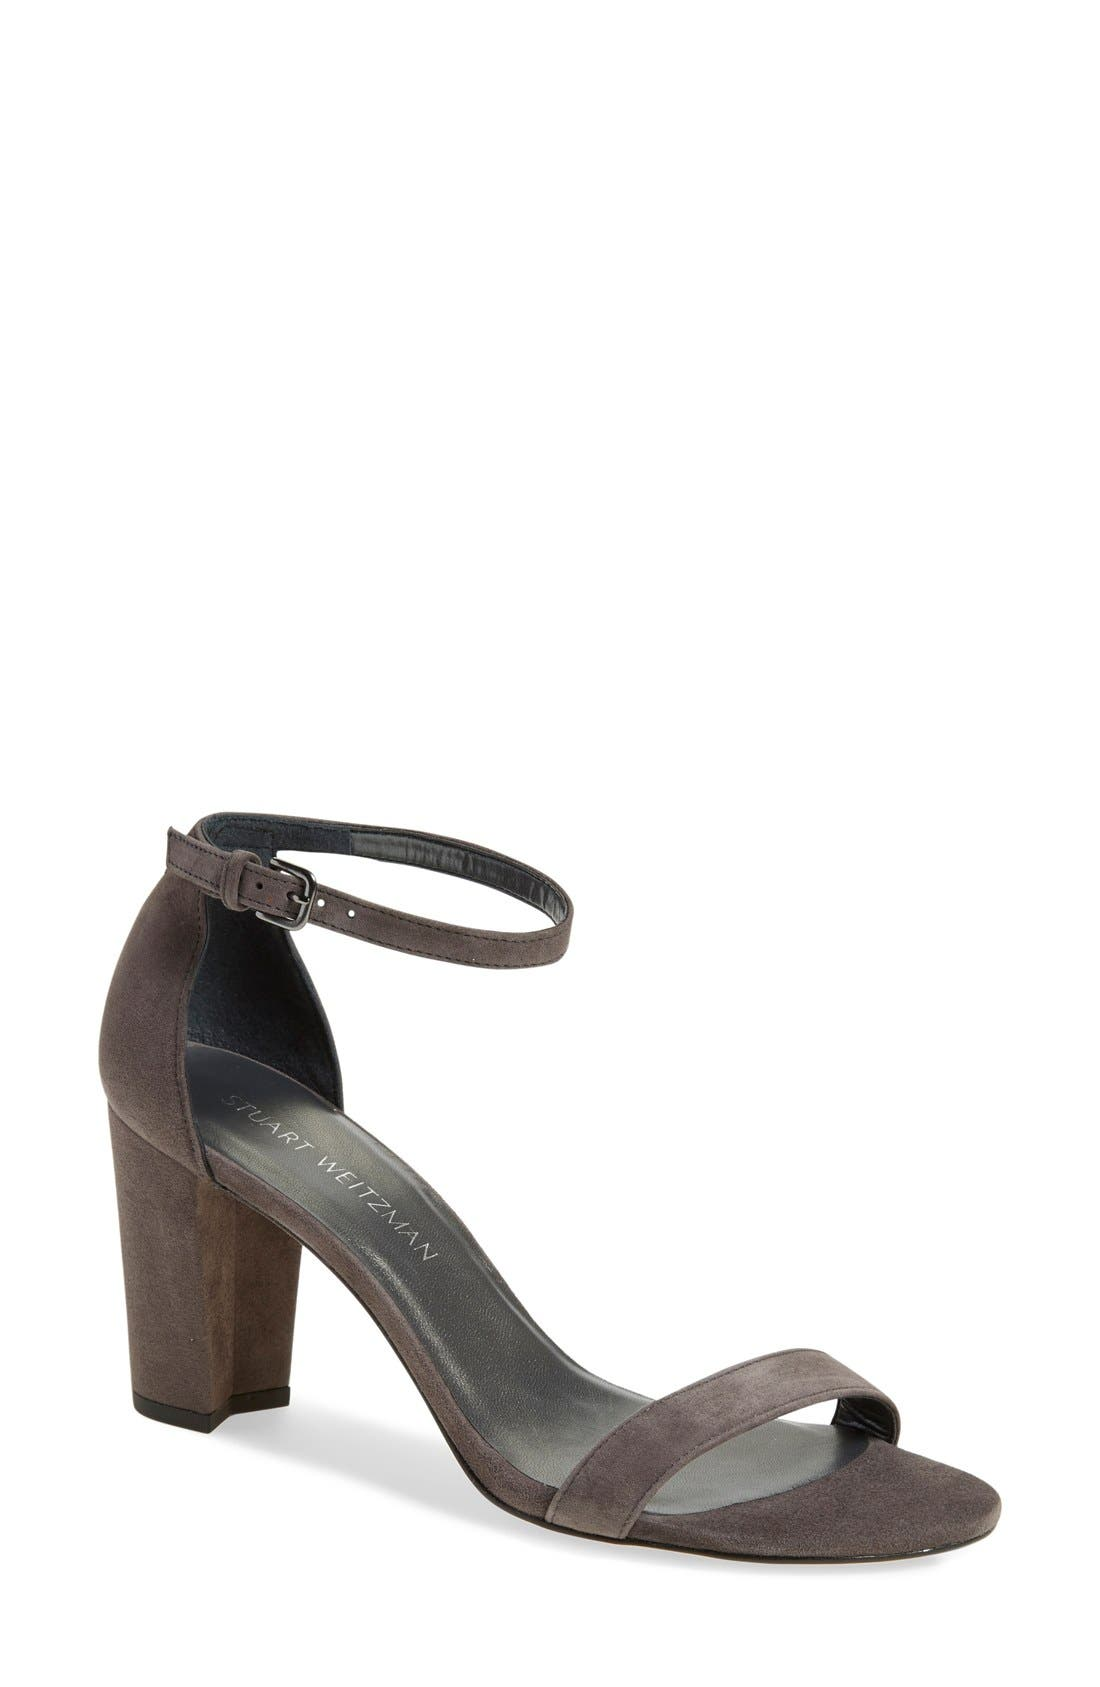 NearlyNude Ankle Strap Sandal,                             Main thumbnail 13, color,